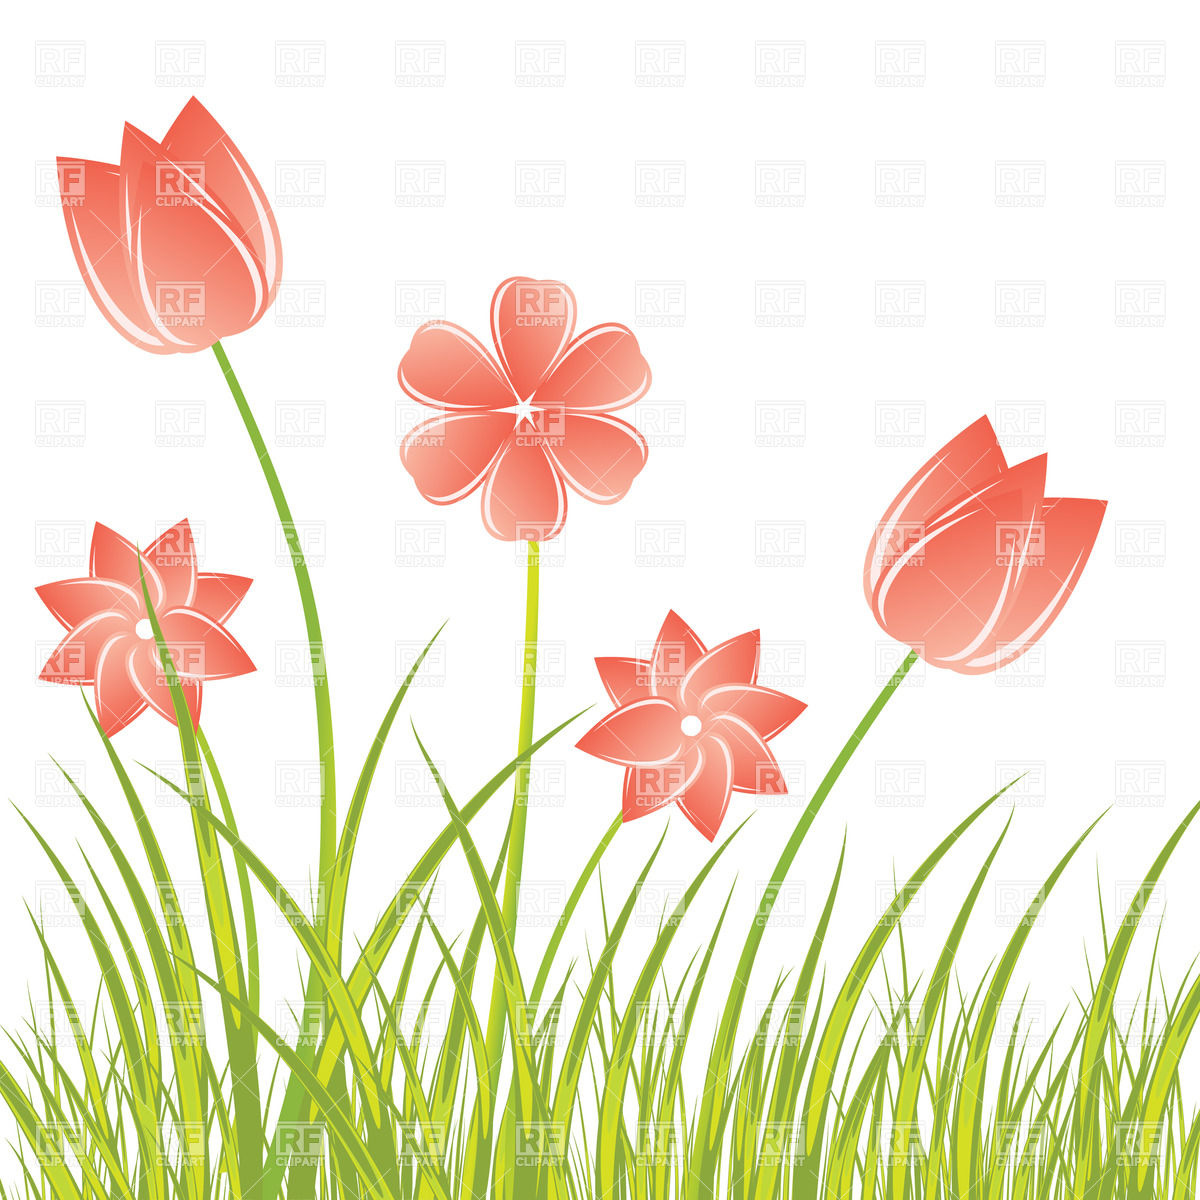 1200x1200 Stylized Hand Drawn Flowers In The Fresh Grass Vector Image